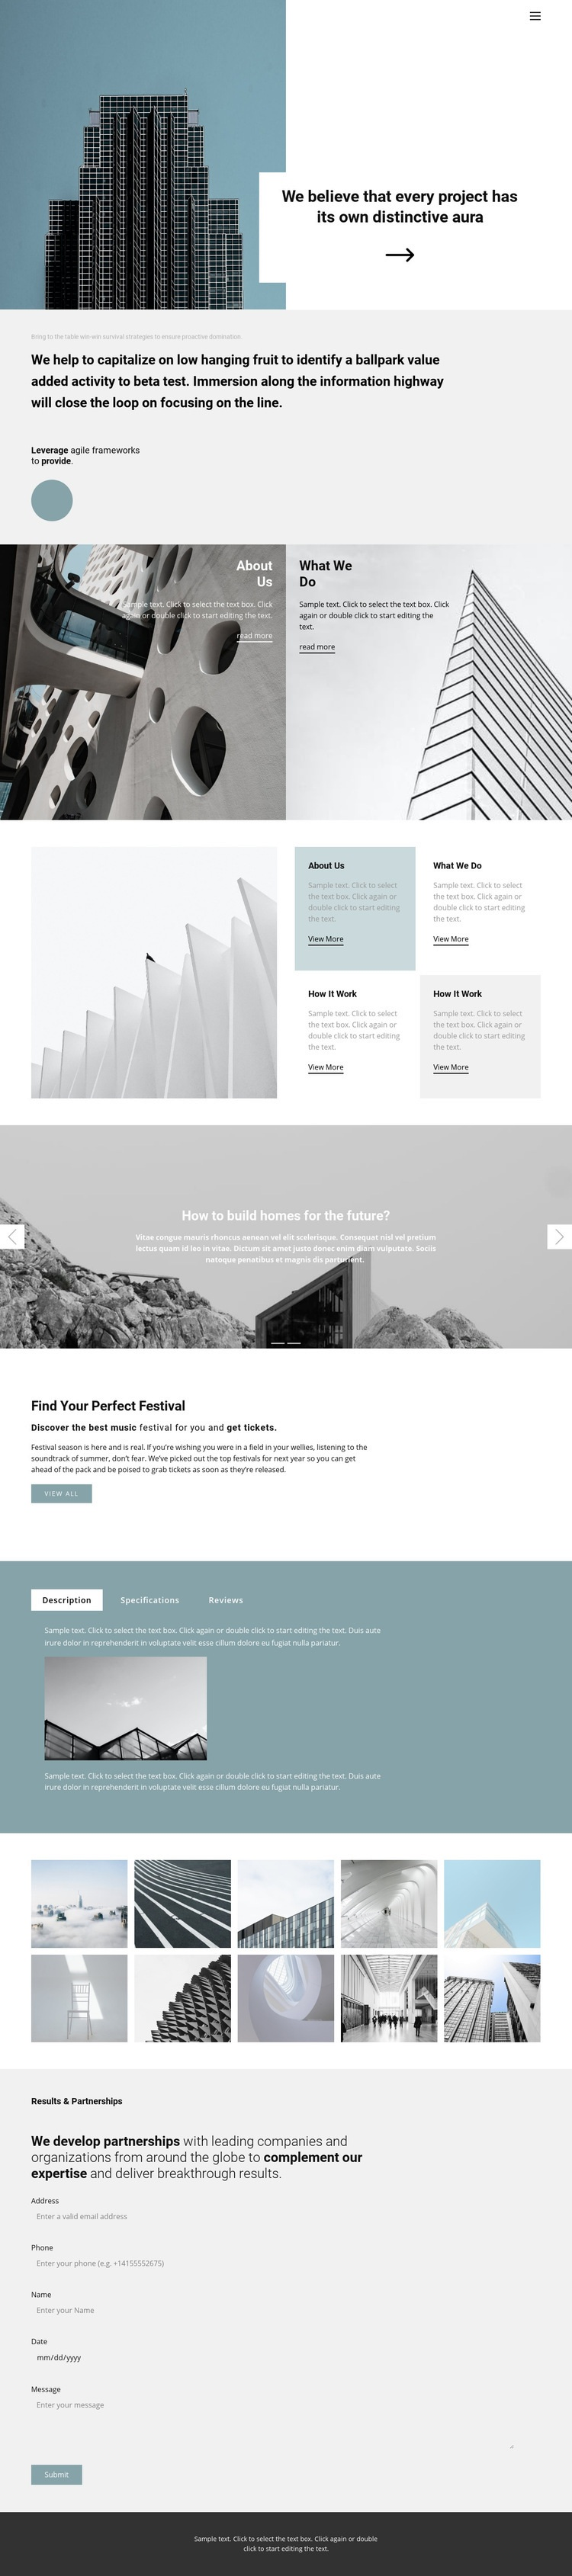 Choose an office for yourself Web Page Designer